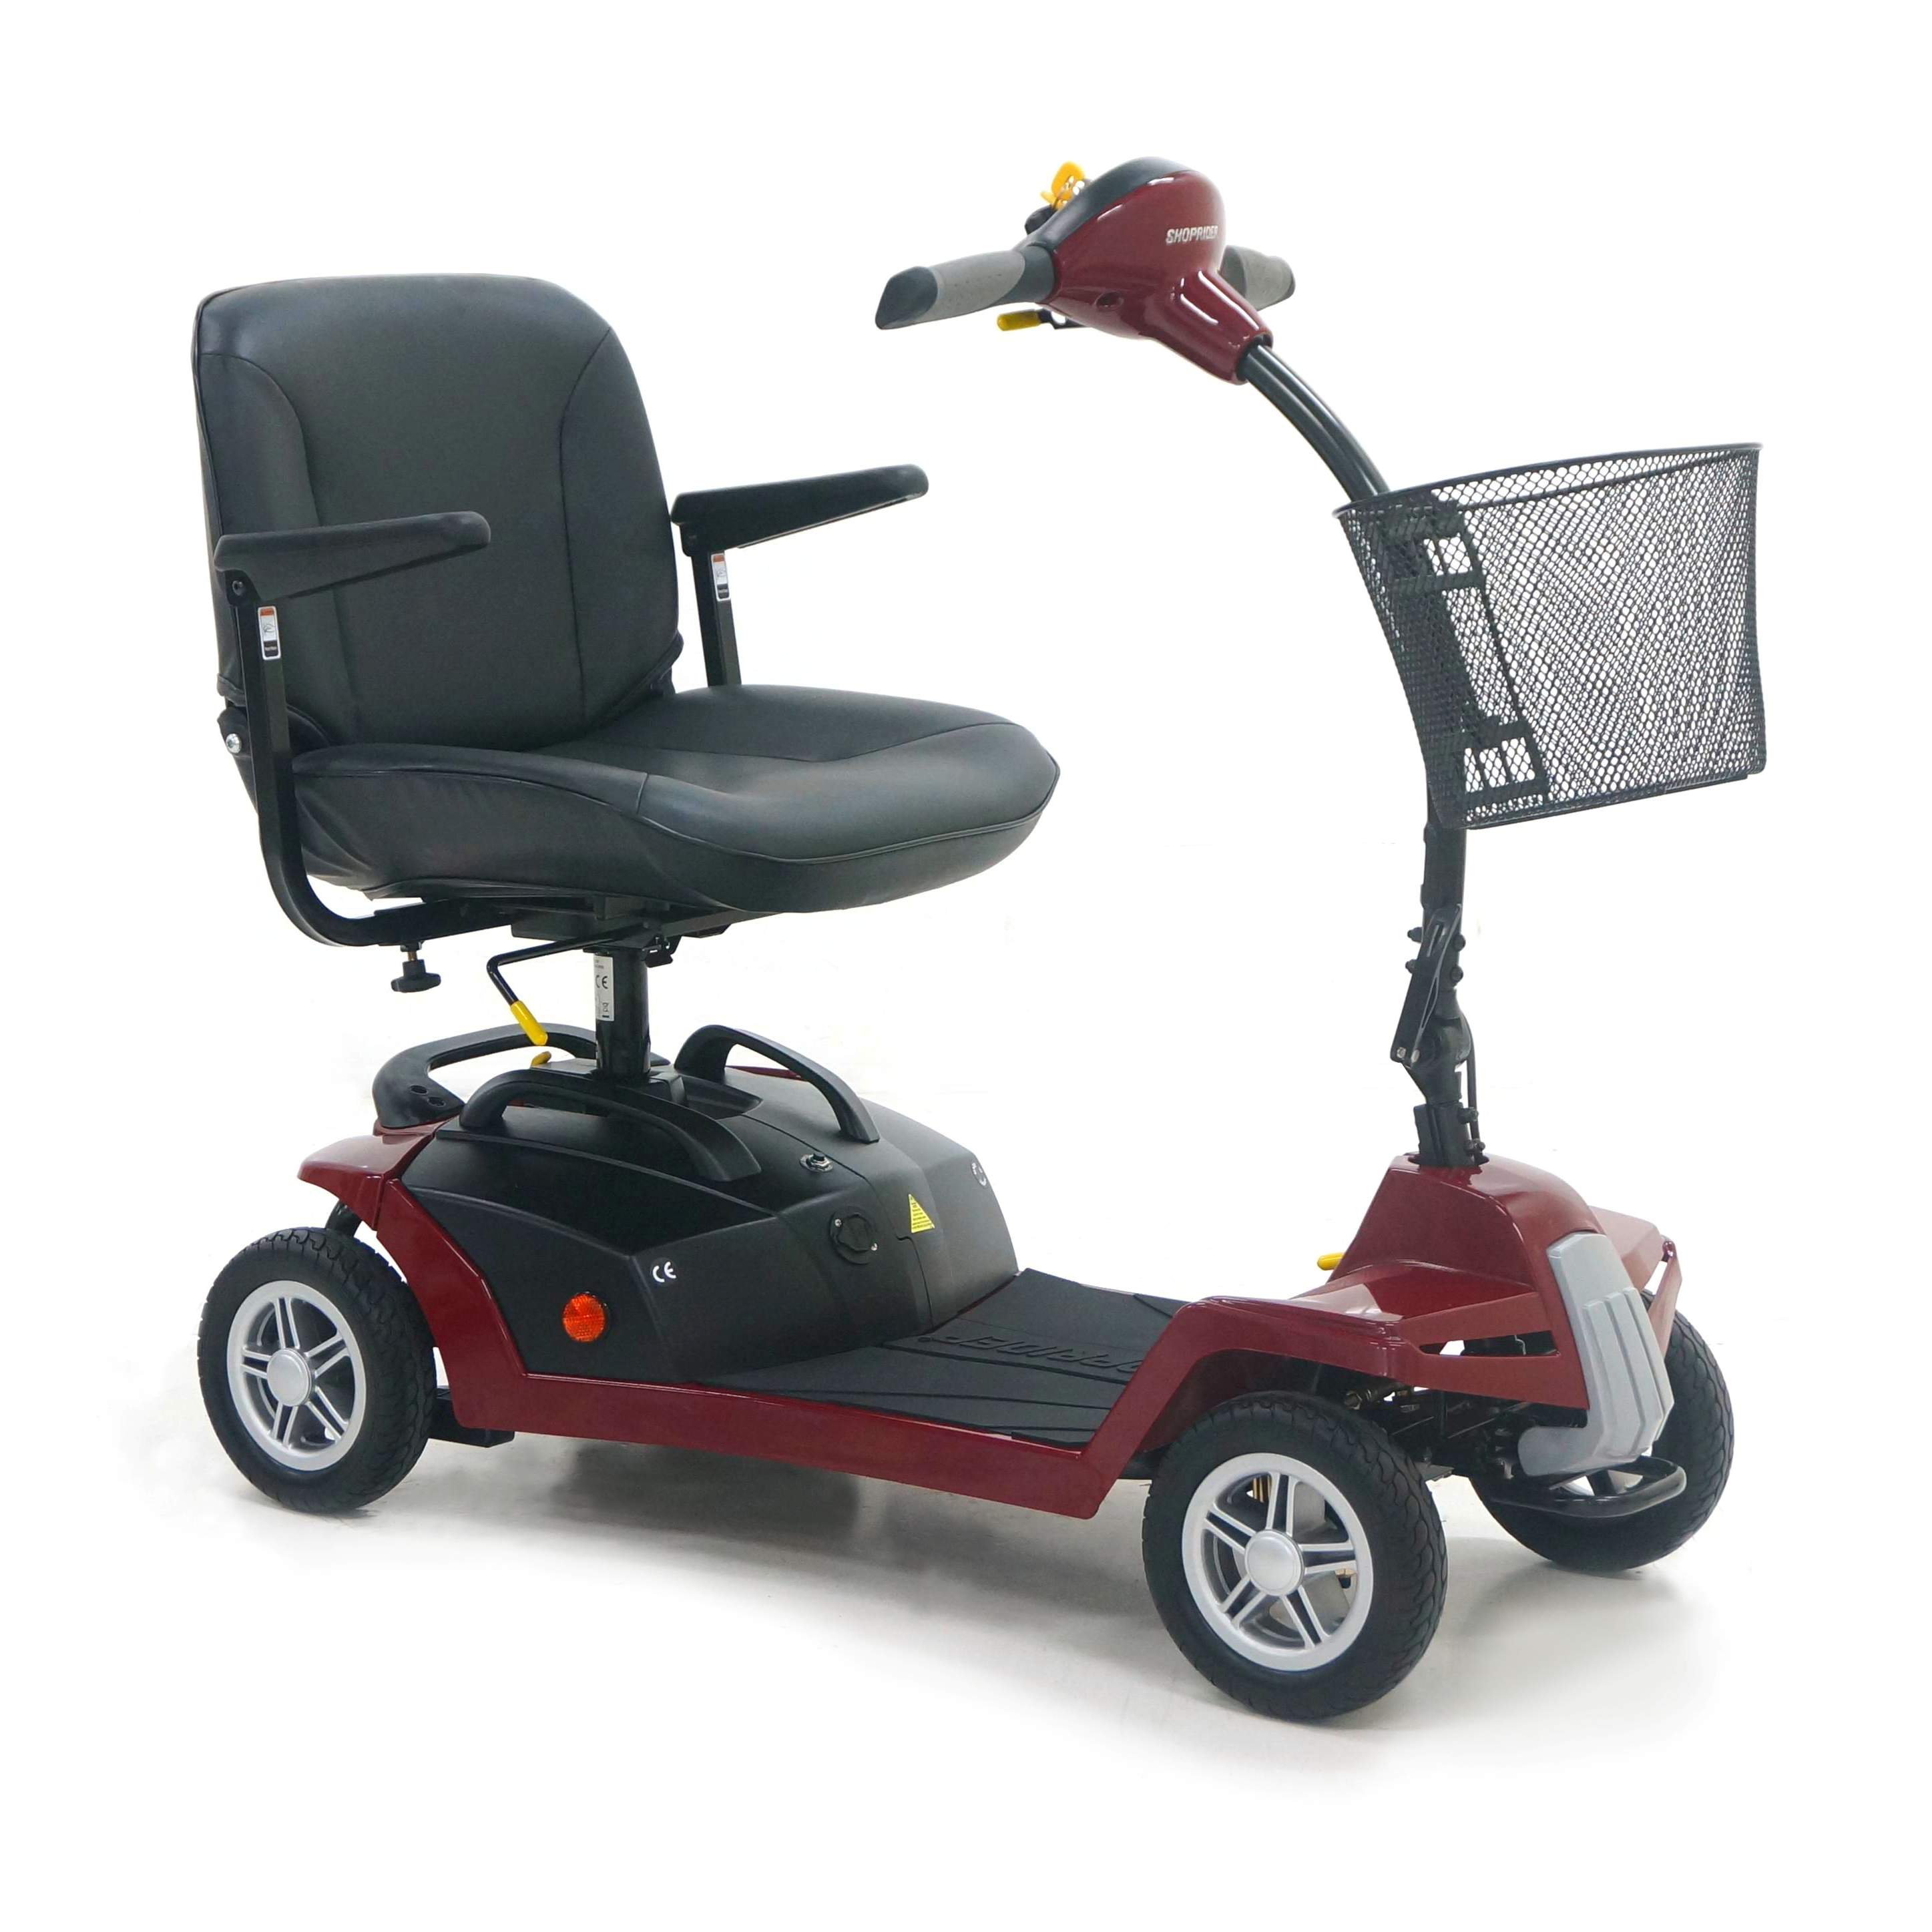 Shoprider QT8 Mobility Scooter, The Little Beauty   4 Wheel, Red